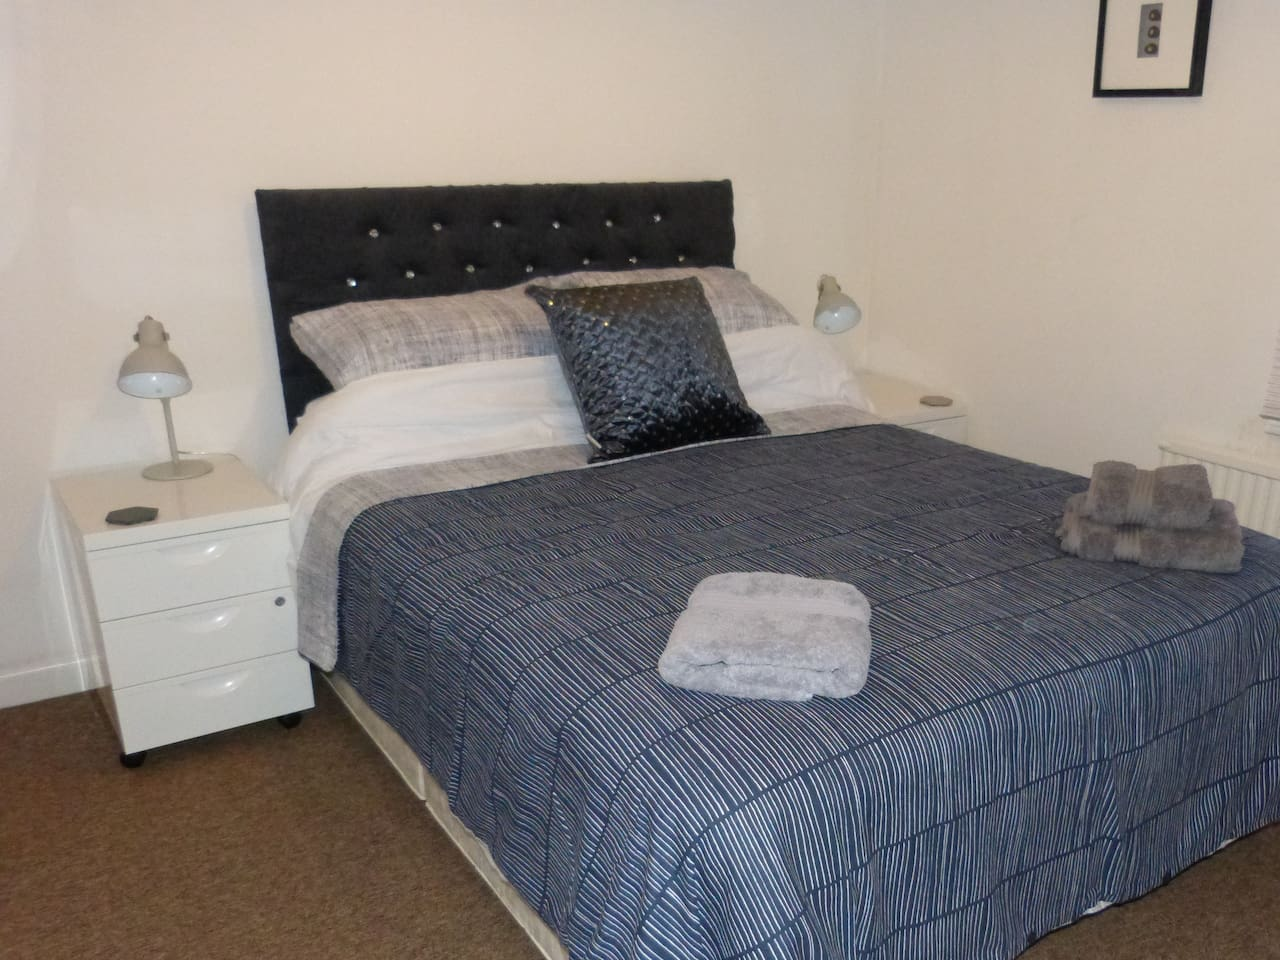 Main bedroom with king size bed and memory foam mattress.